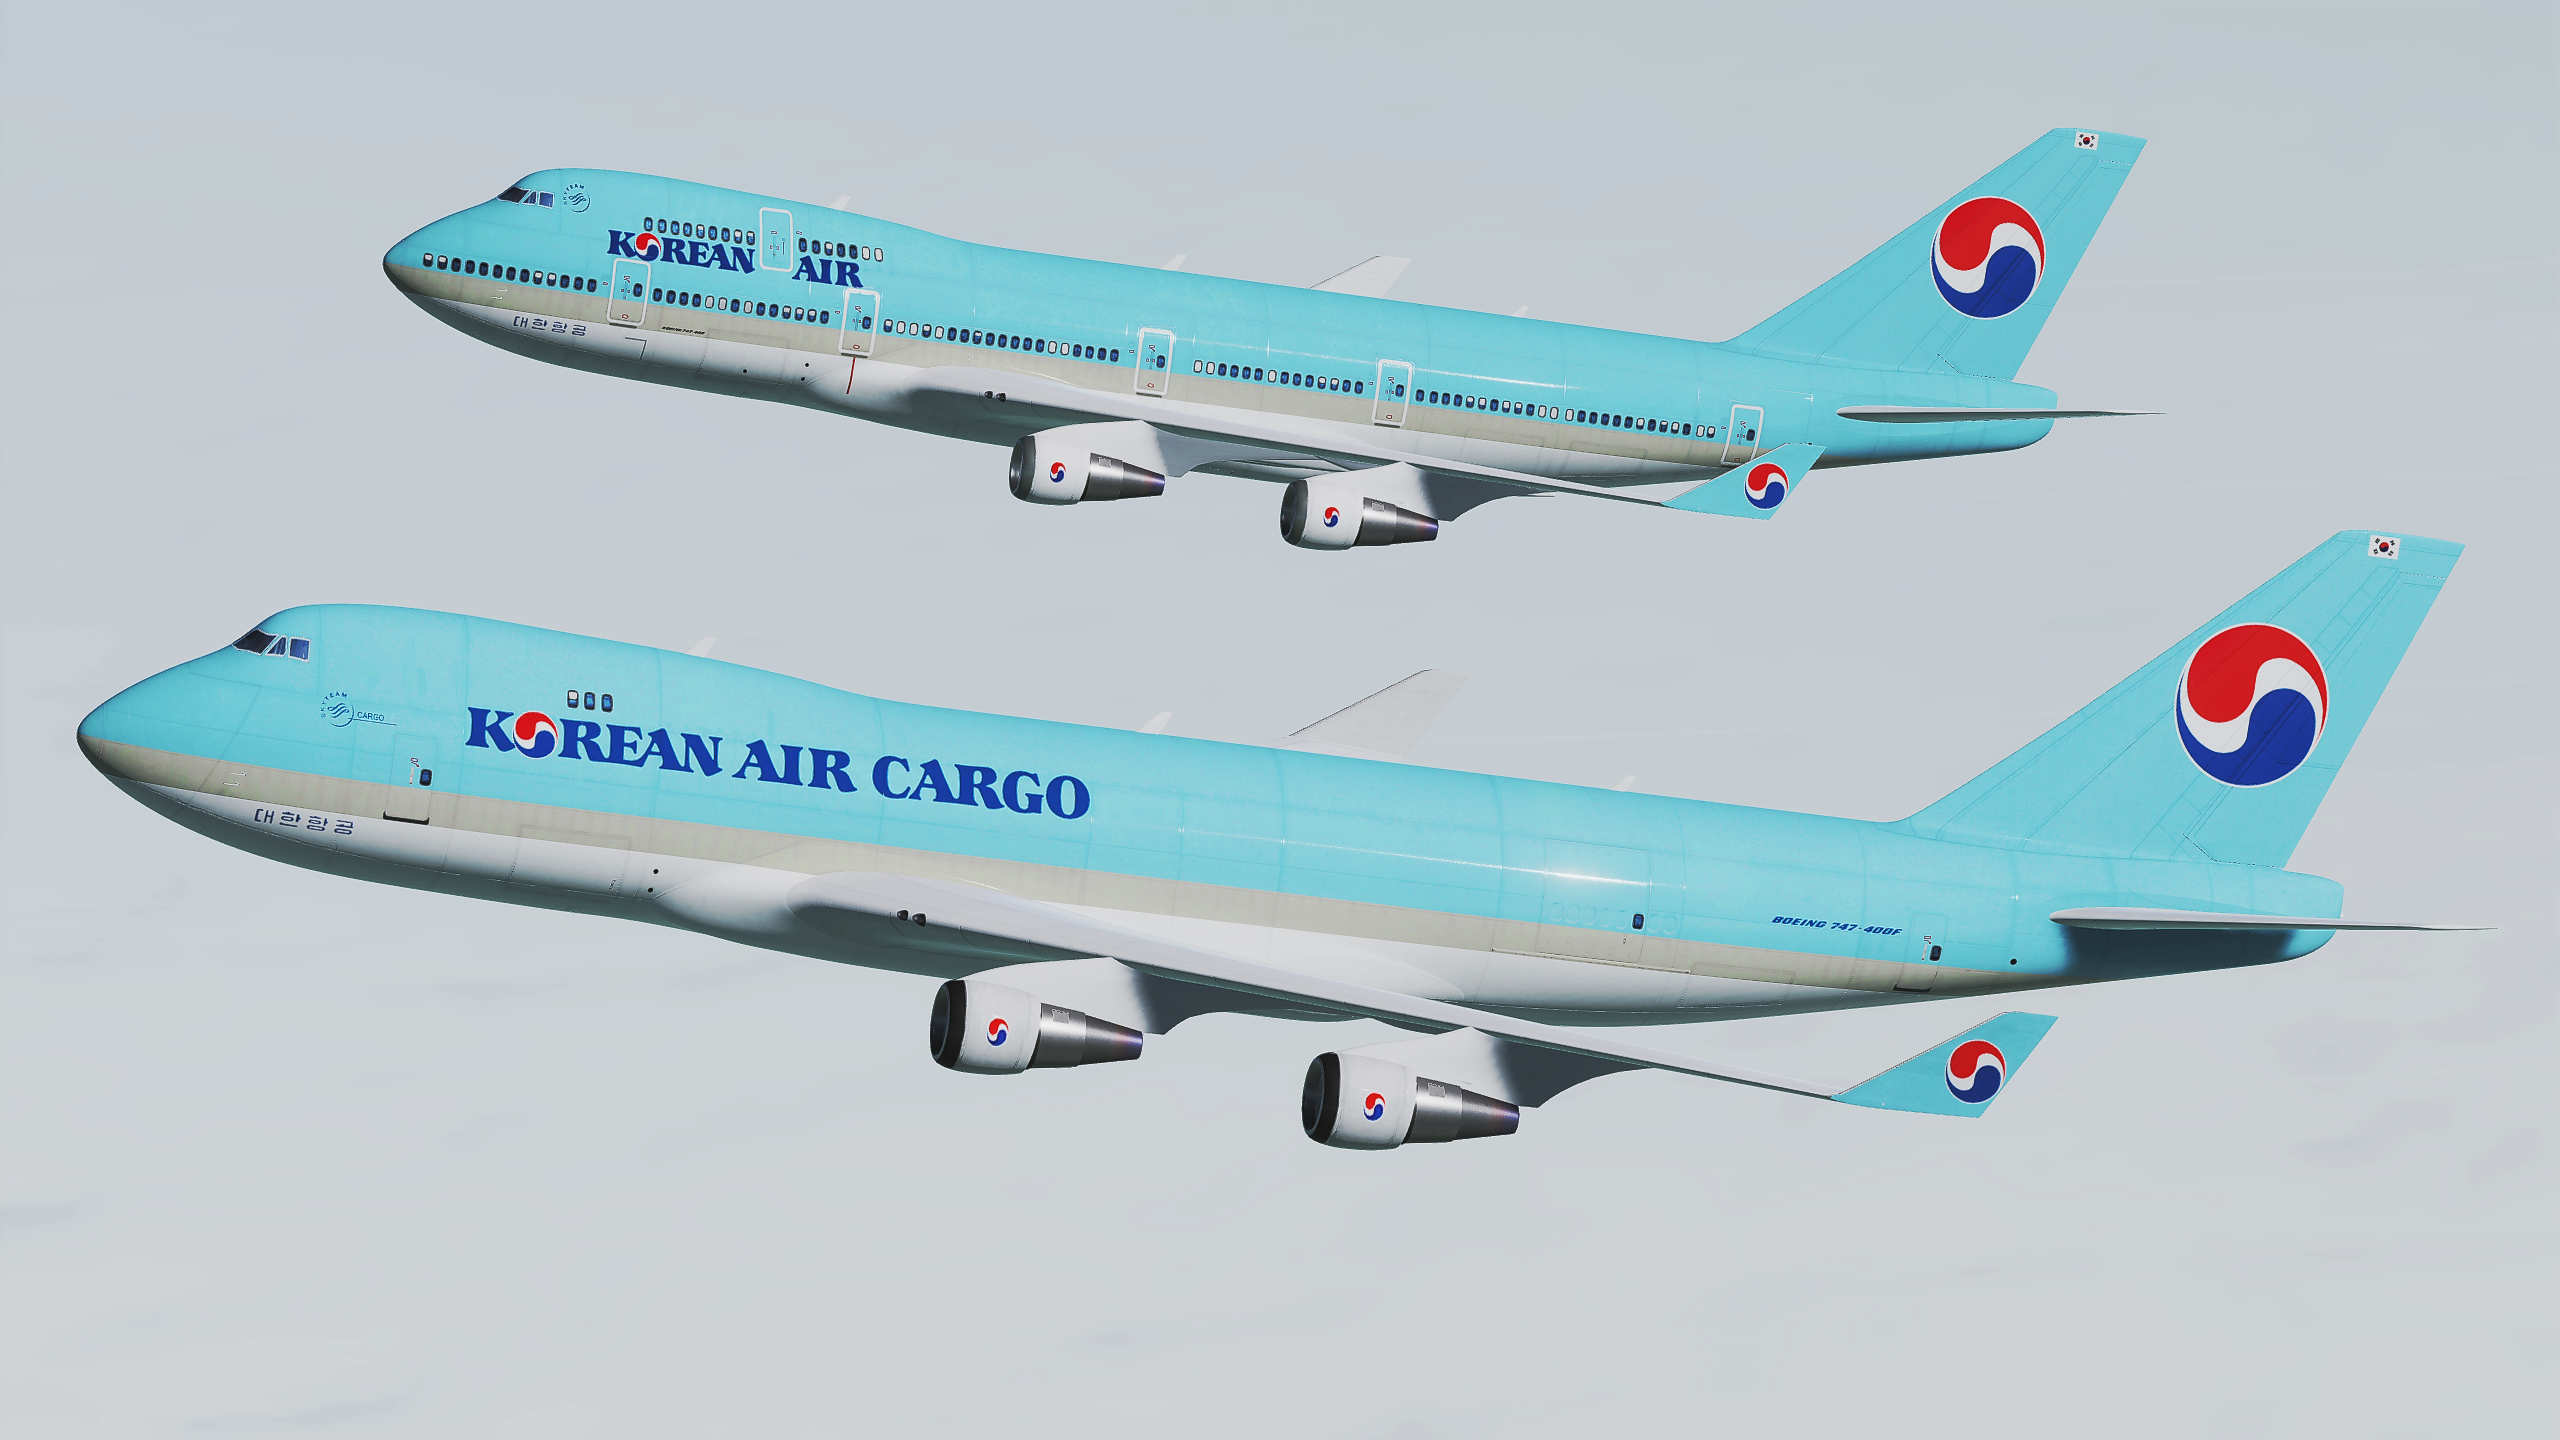 Korean Air 747-400 Skin Pack for Civilian Aircraft Mod